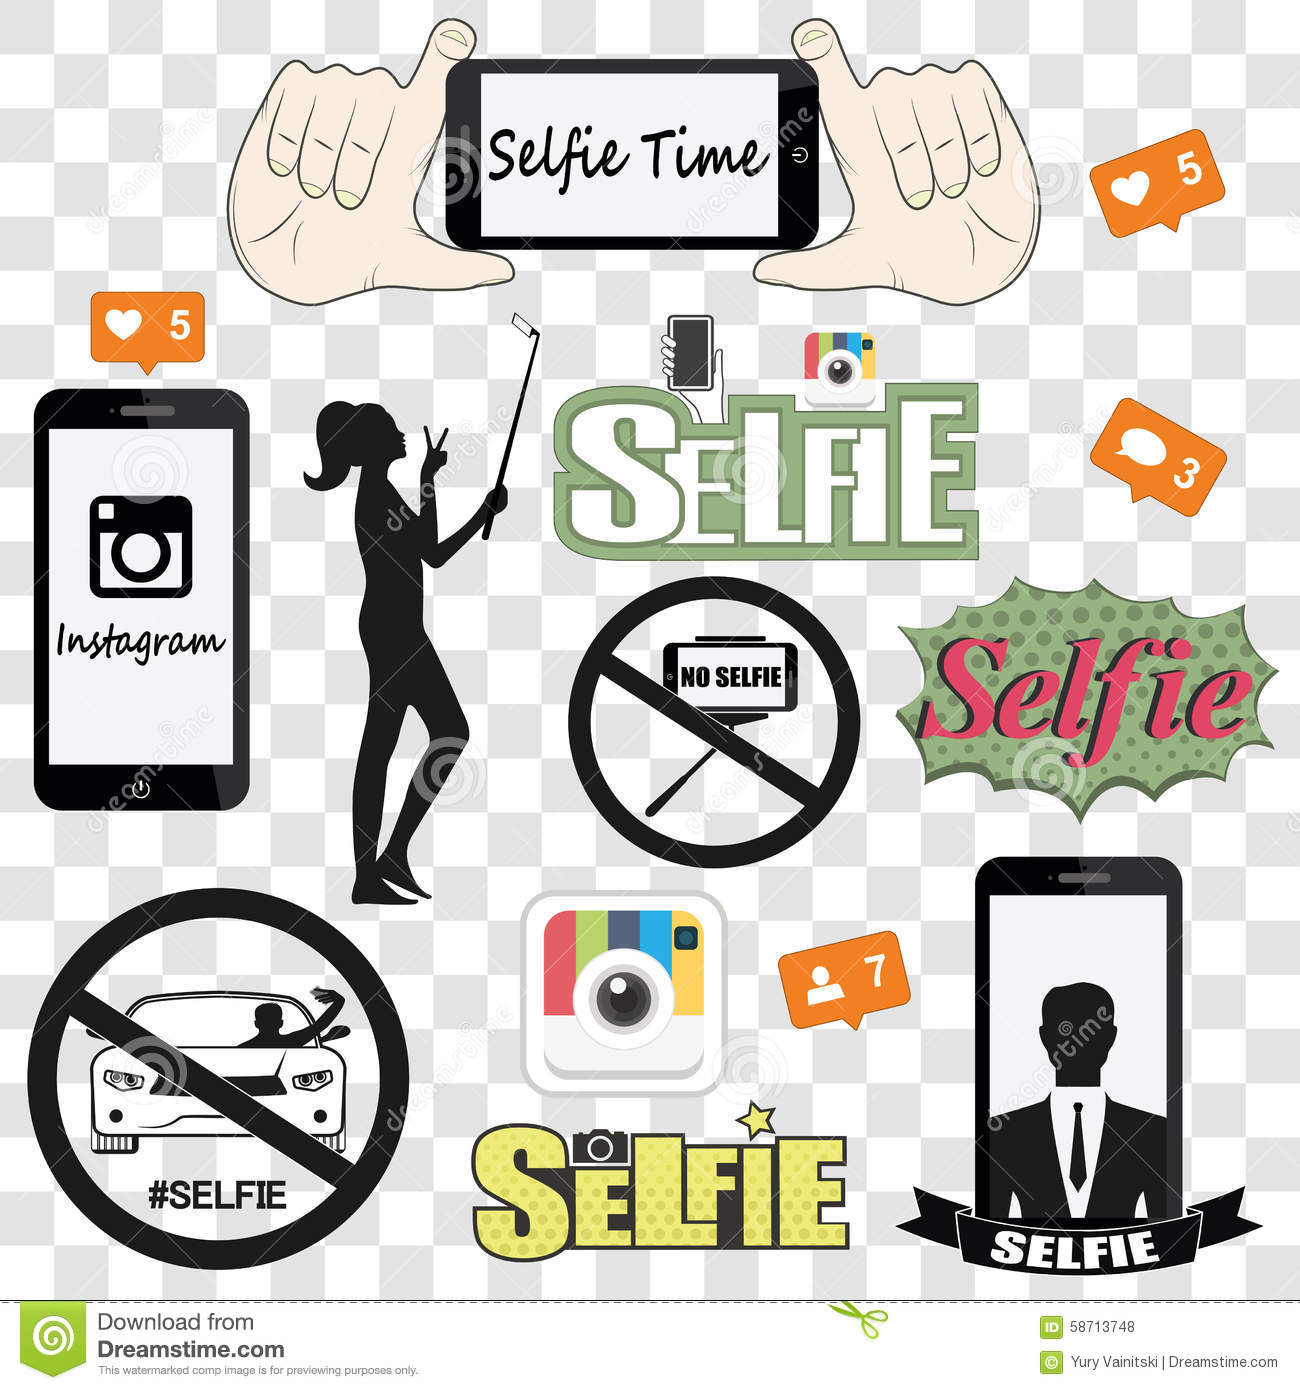 Selfie Related Vector Icons Set Stock Vector - Image: 58713748